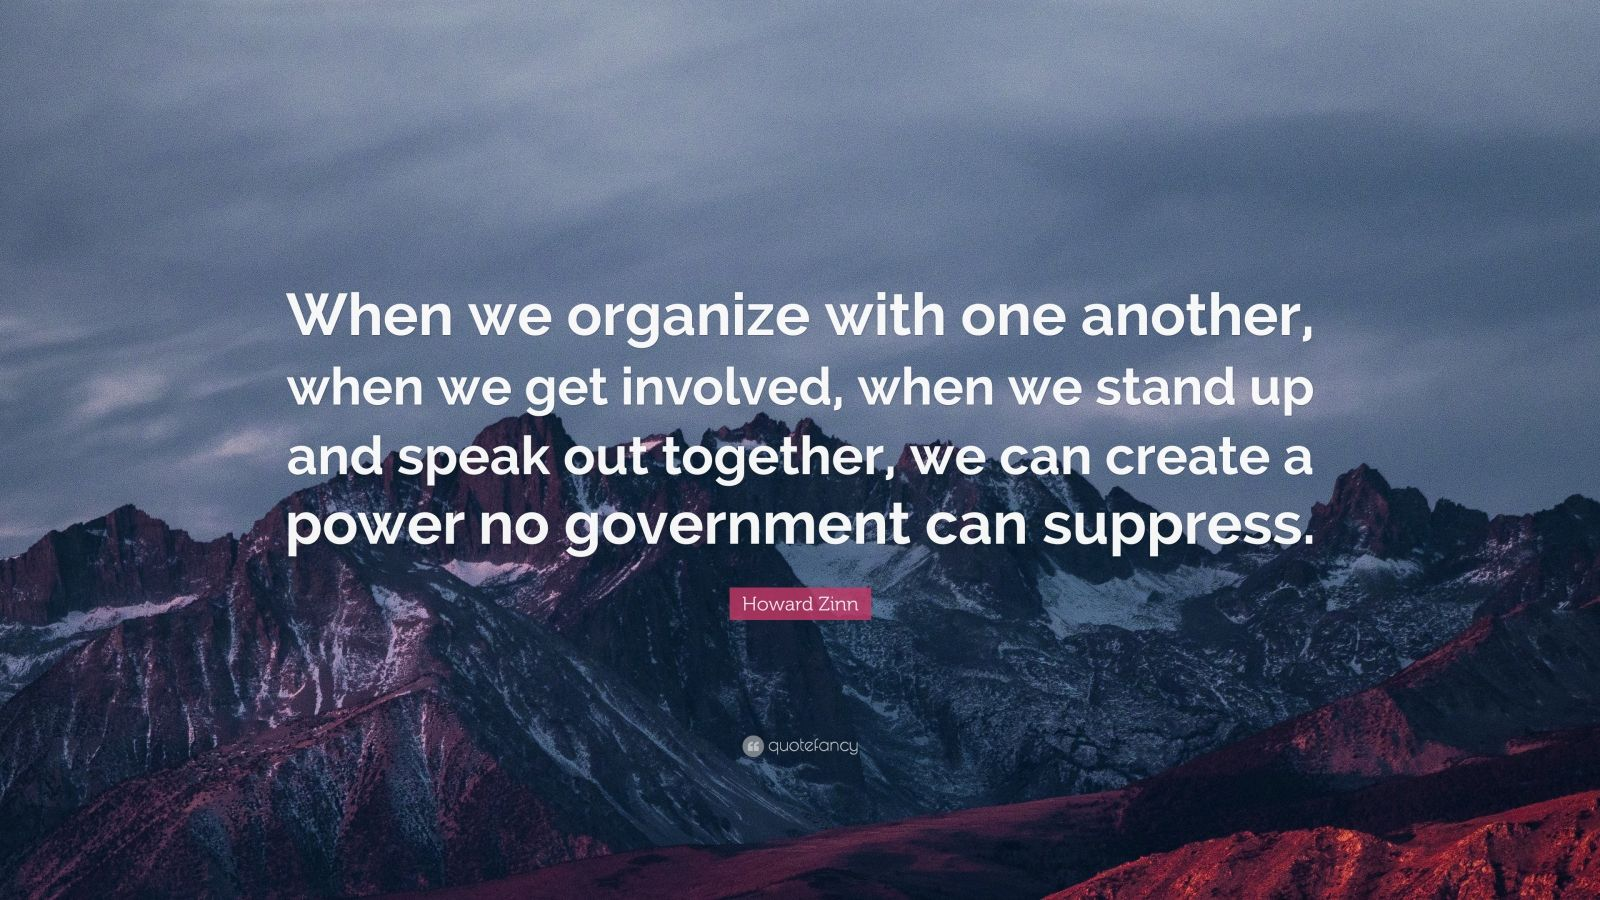 """Howard Zinn Quote: """"When we organize with one another, when we get involved, when we stand up and speak out together, we can create a power no government can suppress."""""""